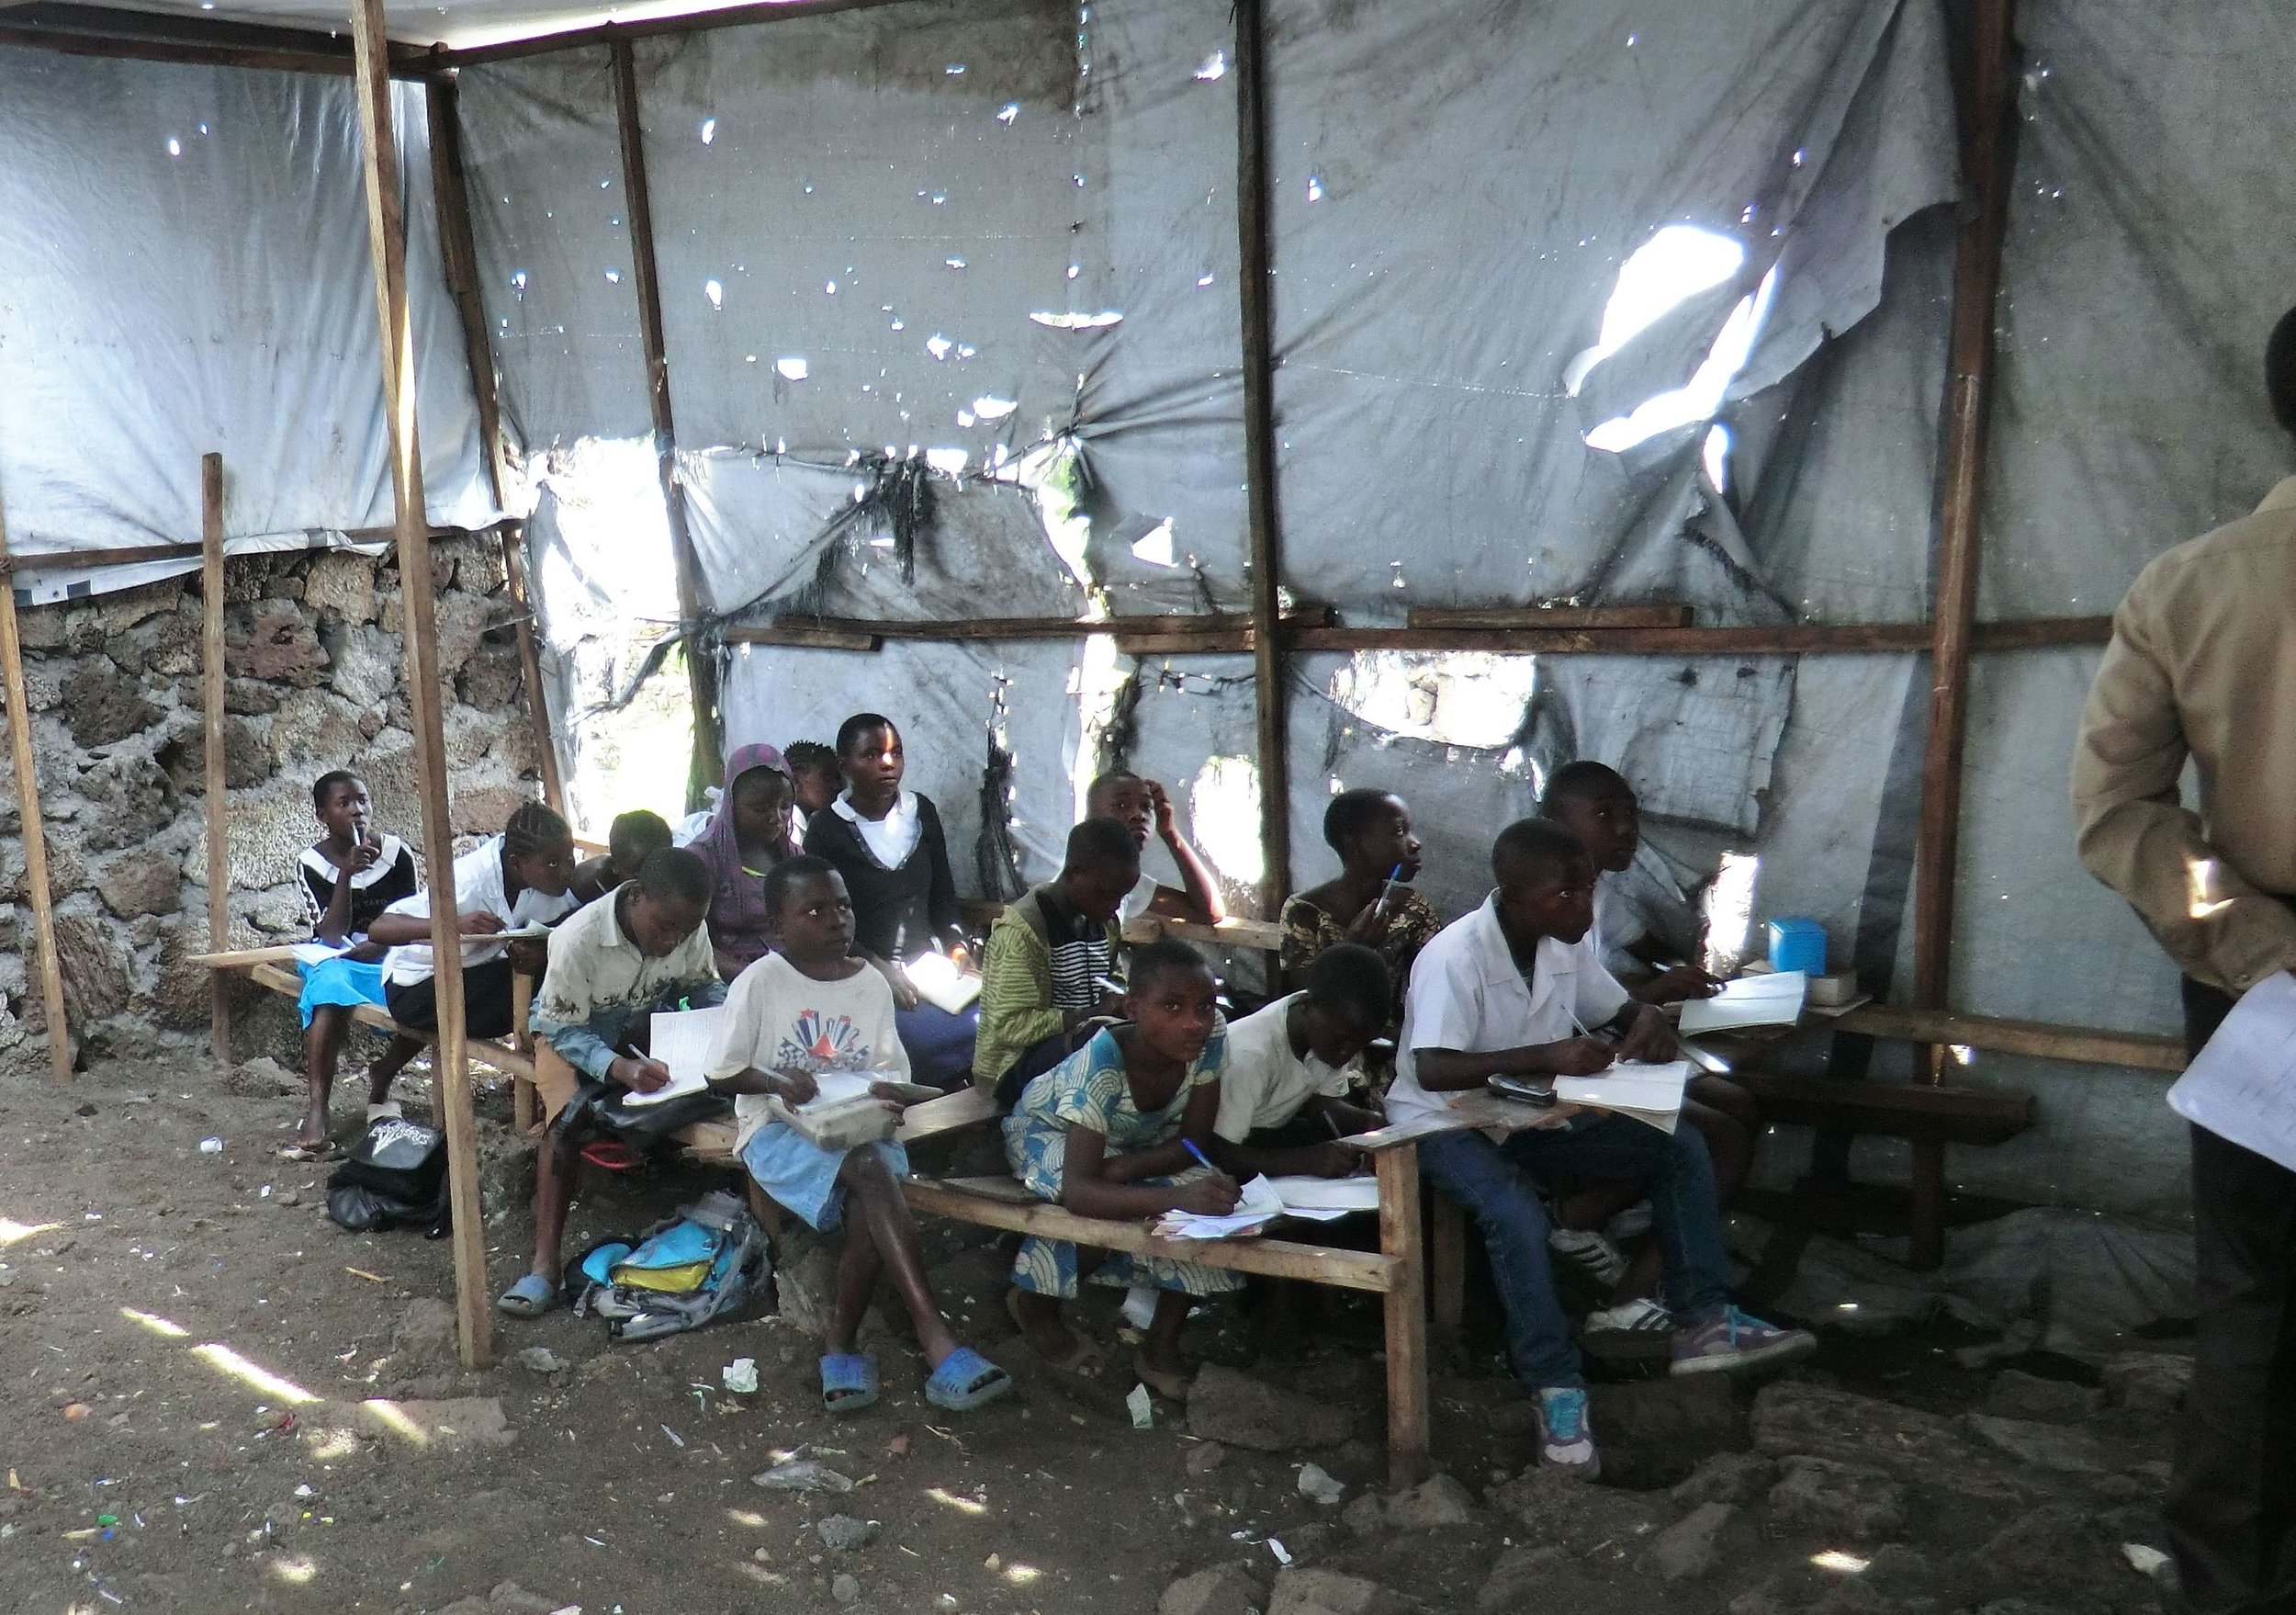 We helped this orphan school in the Congo (DRC)